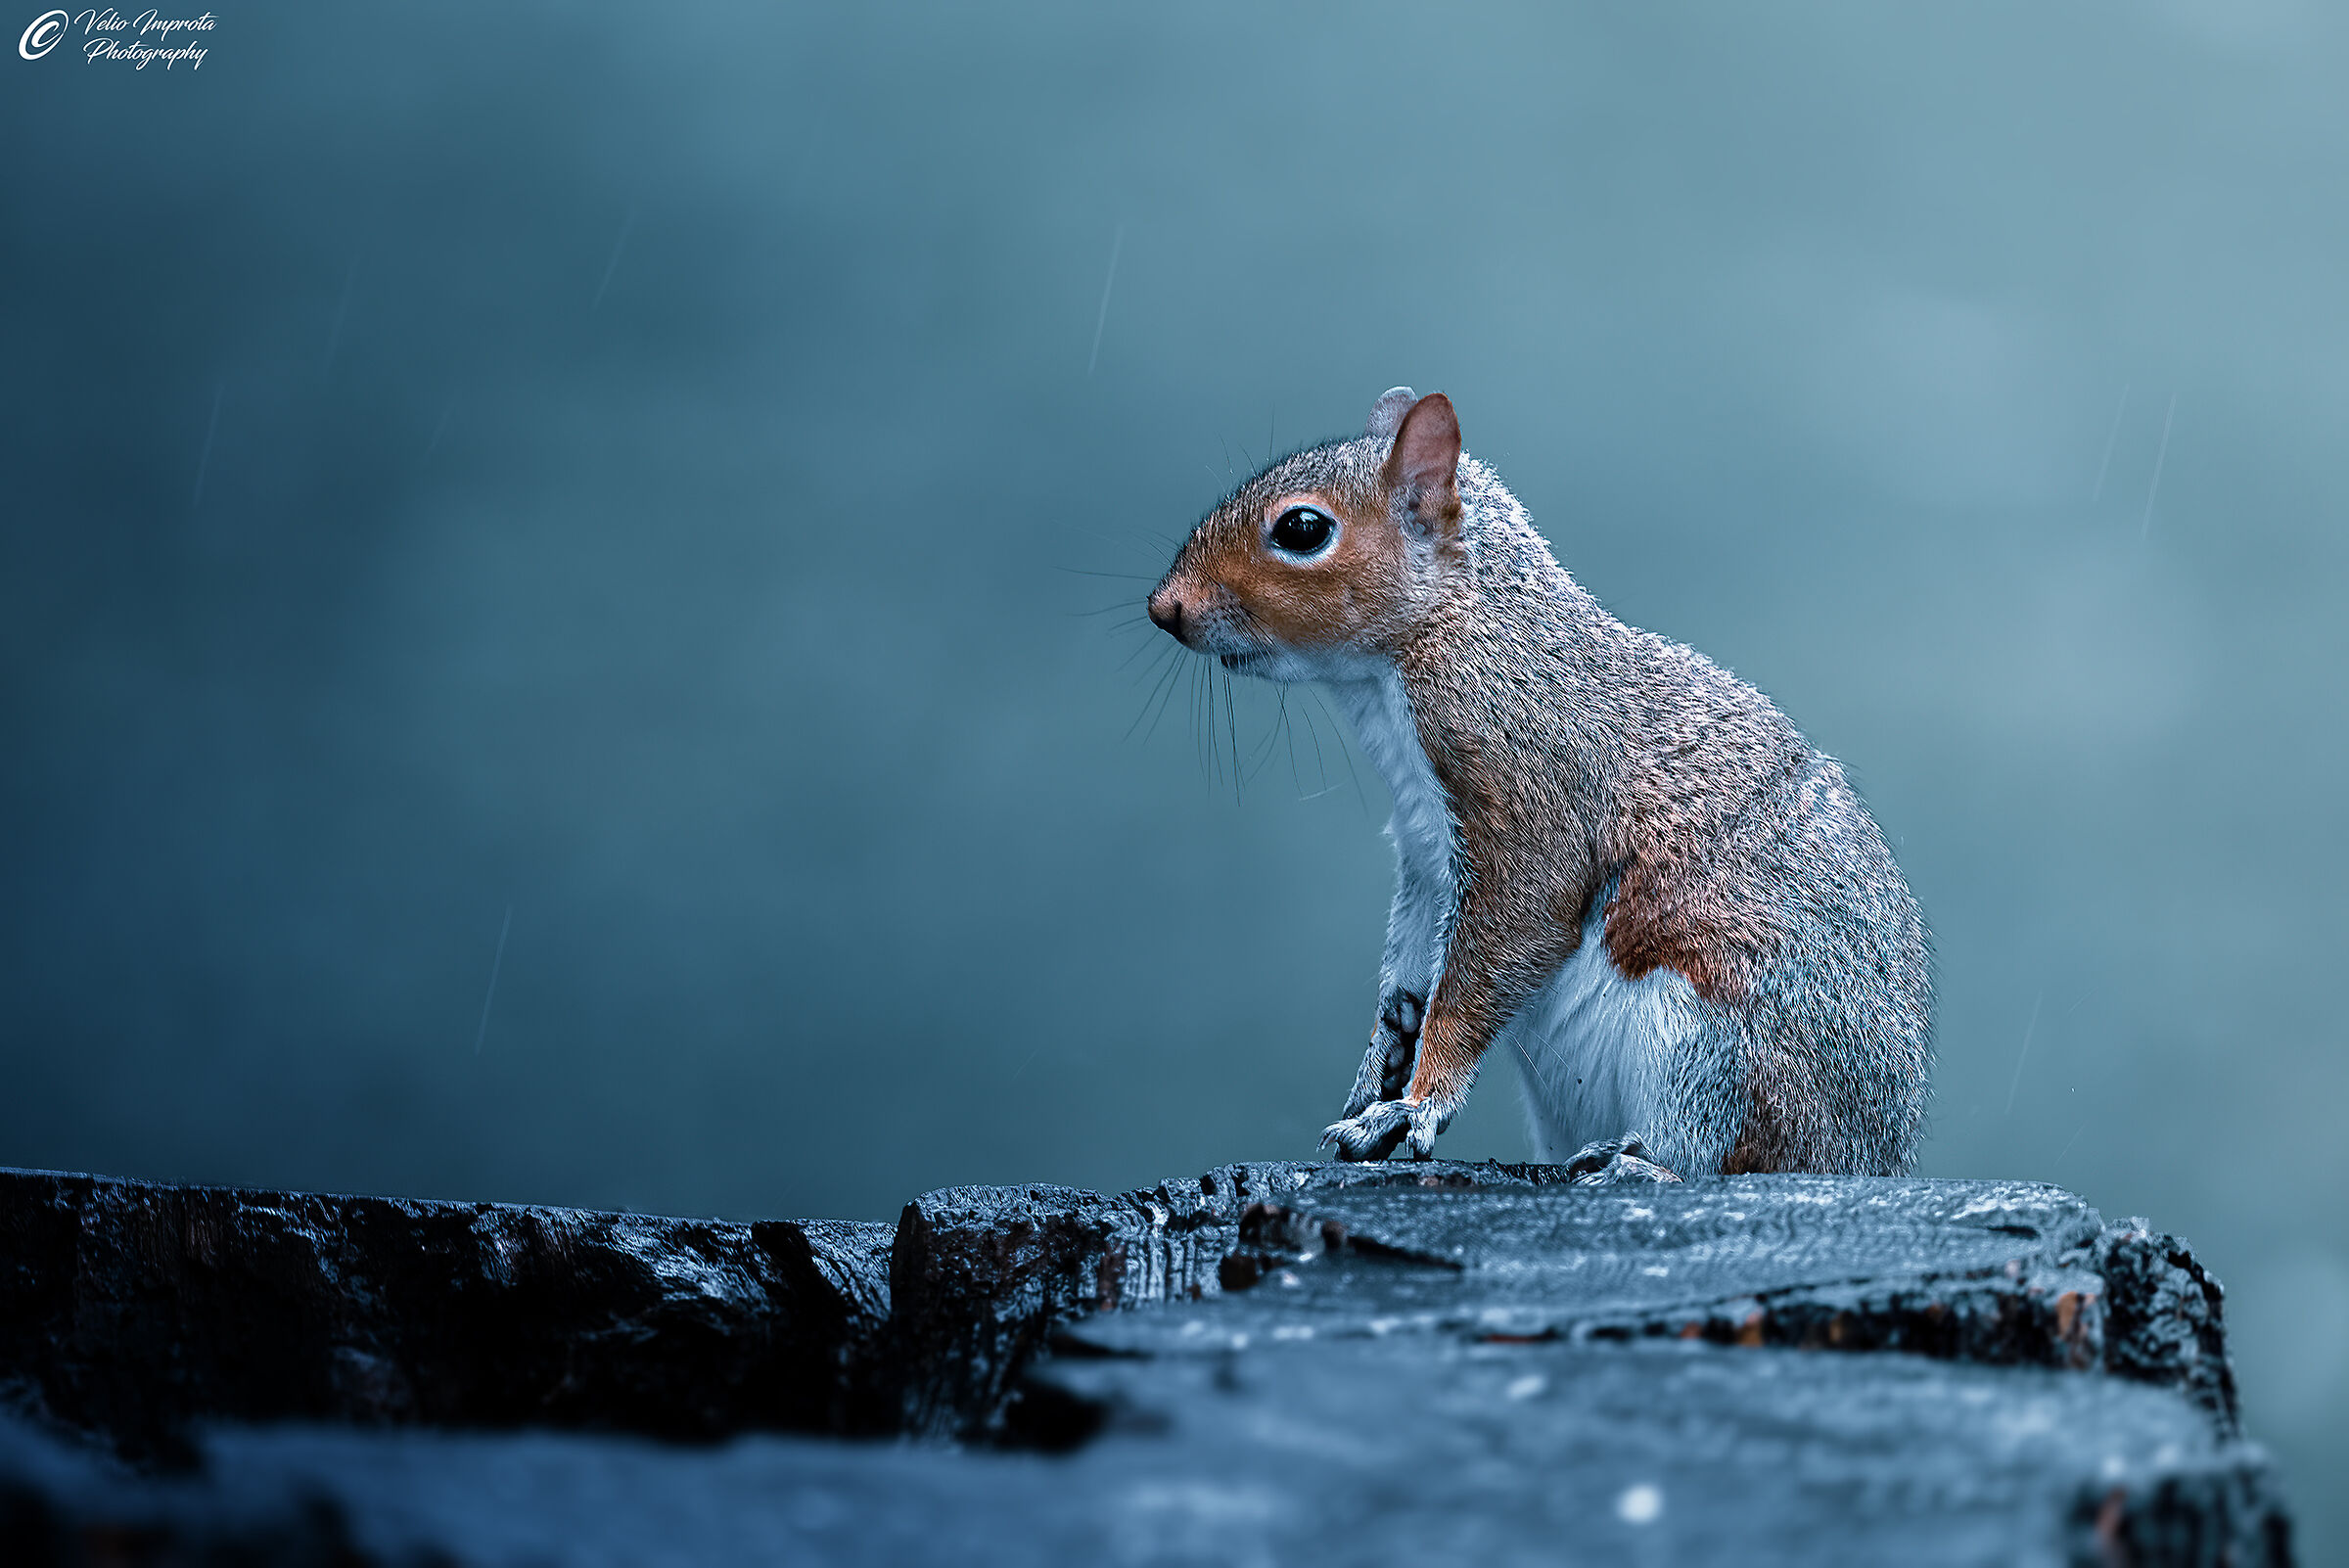 Getting wet in the rain...